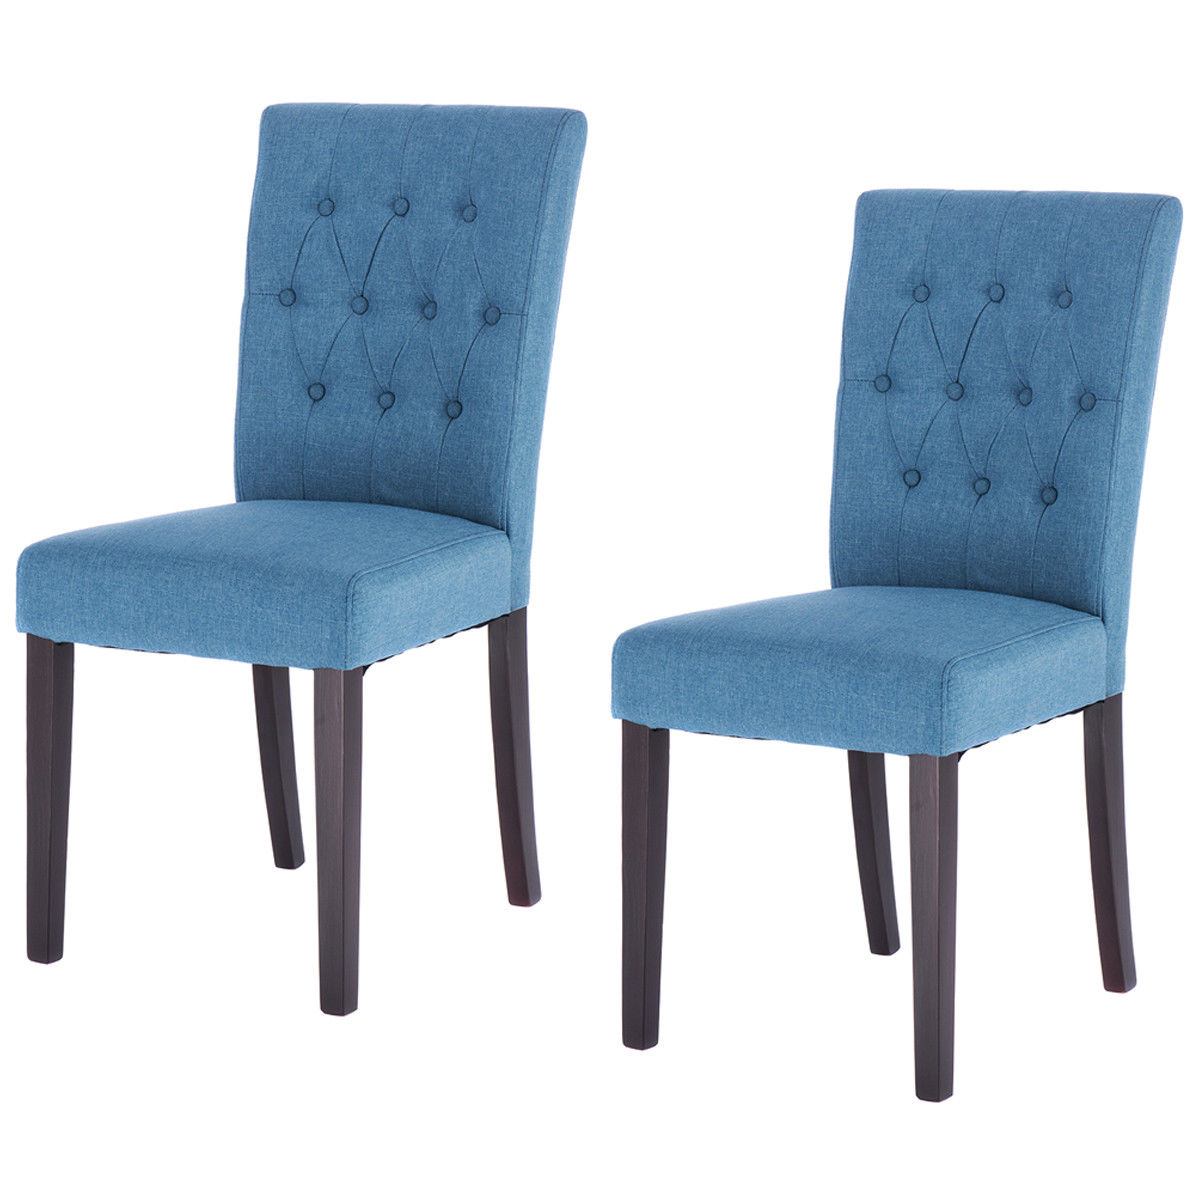 Upholstered Dining Chairs With Oak Legs Swing Chair Murah Giantex Set Of 2pcs Modern Fabric Armless